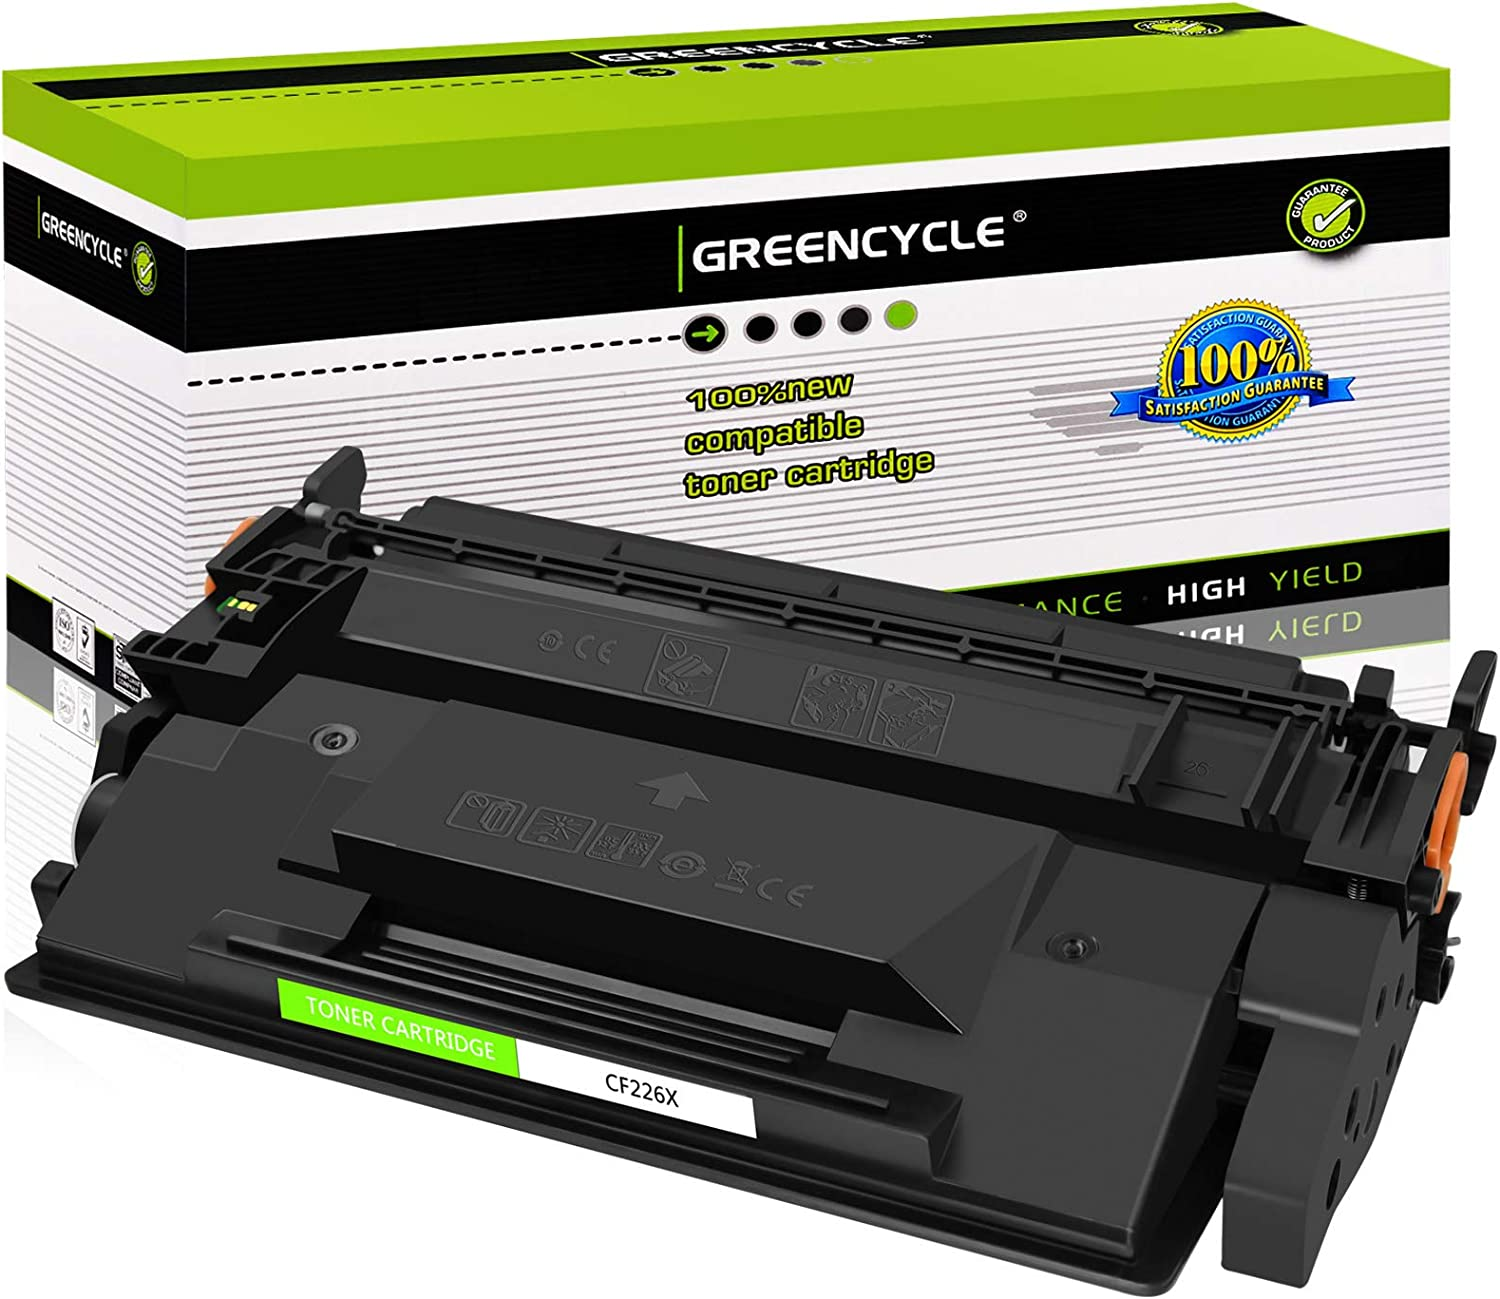 GREENCYCLE 9000 Pages per Toner Cartridge Replacement Compatible for HP 26X CF226X Used in Laserjet Pro MFP M402n M402dn M402dne MFP M402dw MFP M426fdw MFP M426dw MFP M426fdn Black, 1-Pack